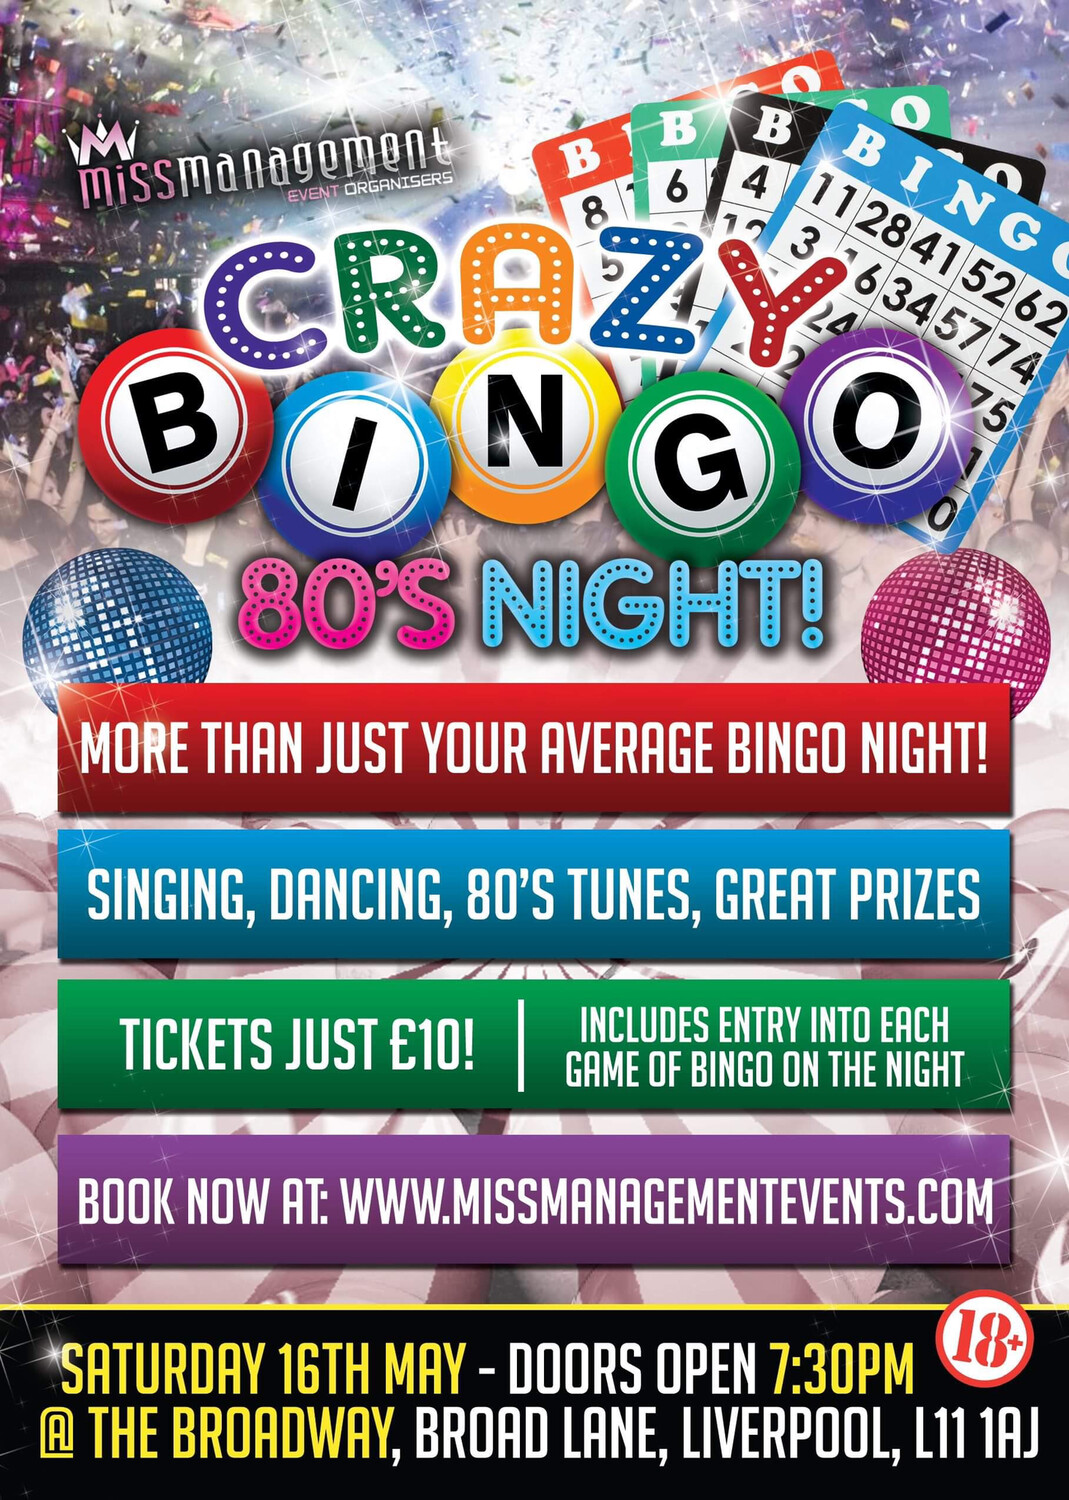 (CB008) 'Crazy Bingo' 80's Theme: Table For Eight (Liverpool) Saturday 16th May 2020